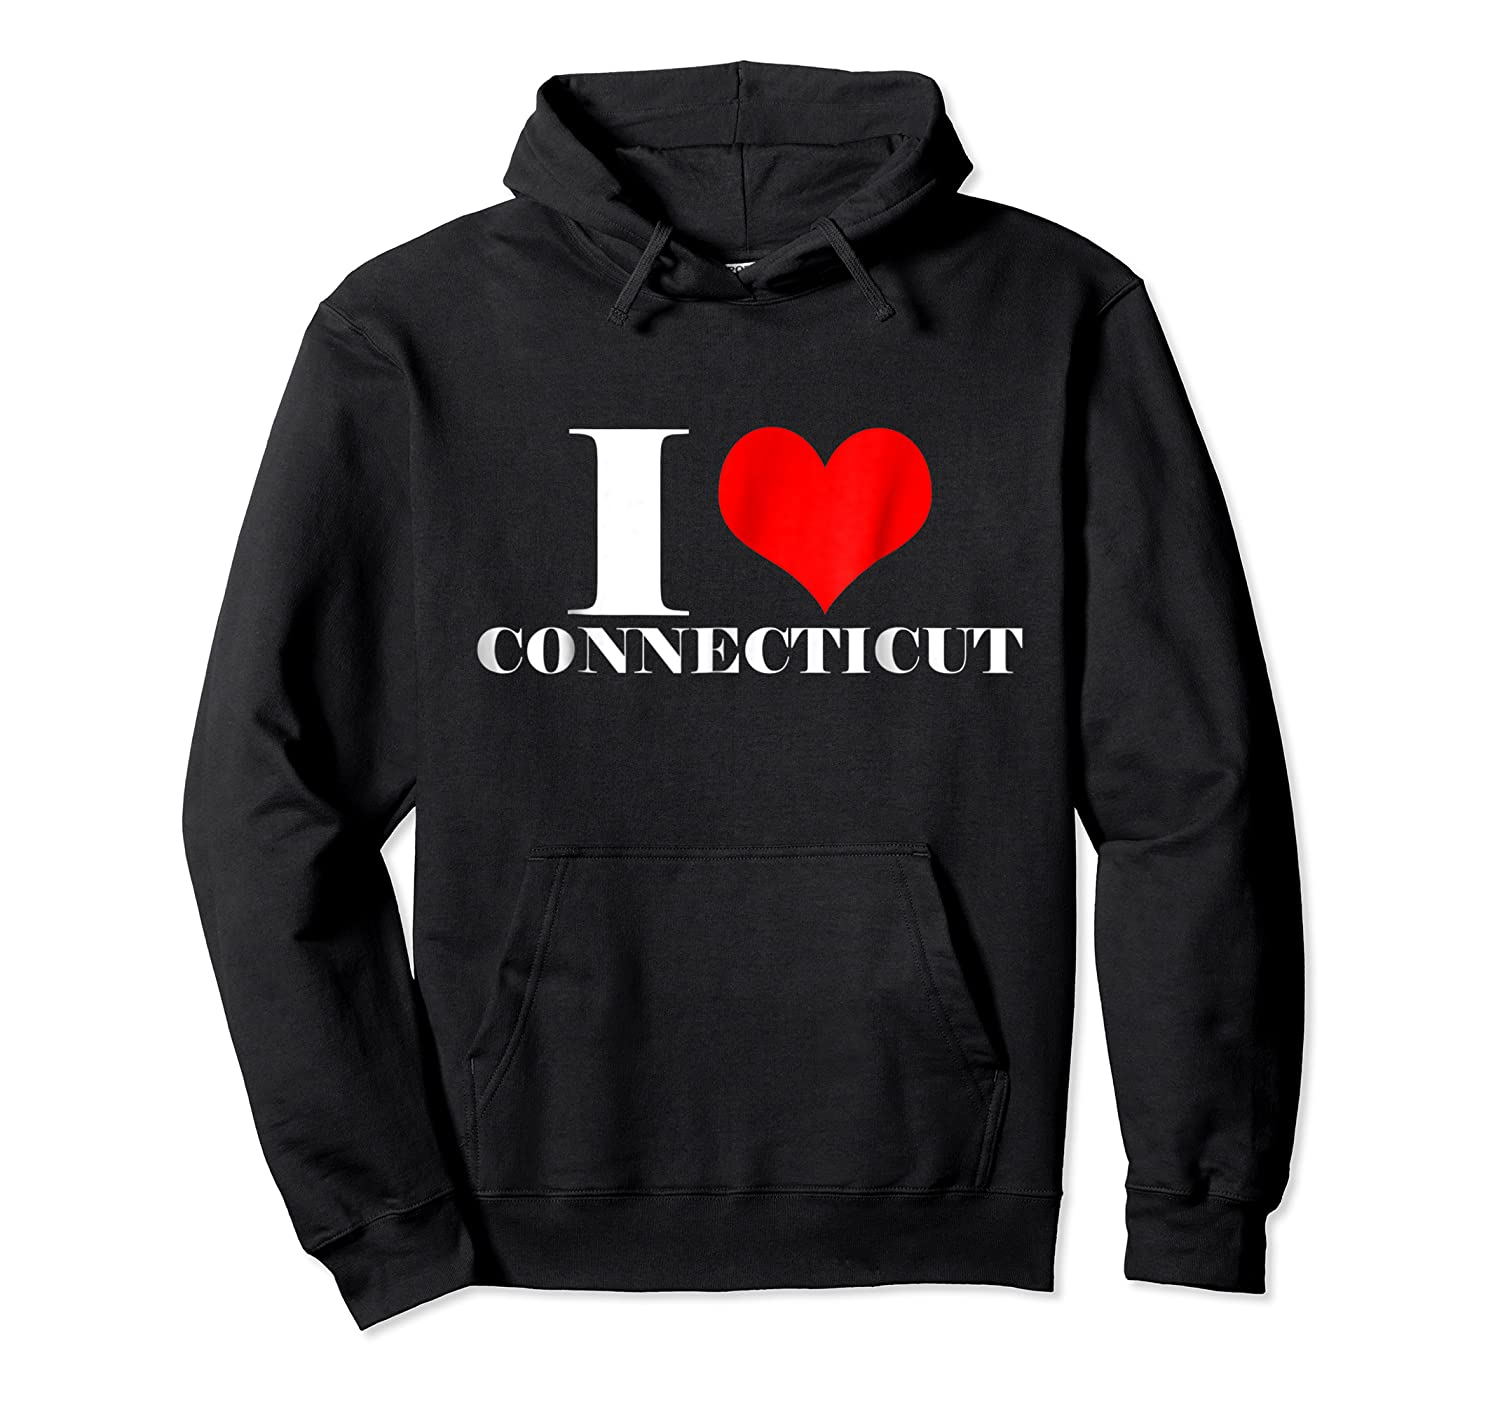 Love Connecticut , Heart Connecticut Usa Shirts Unisex Pullover Hoodie